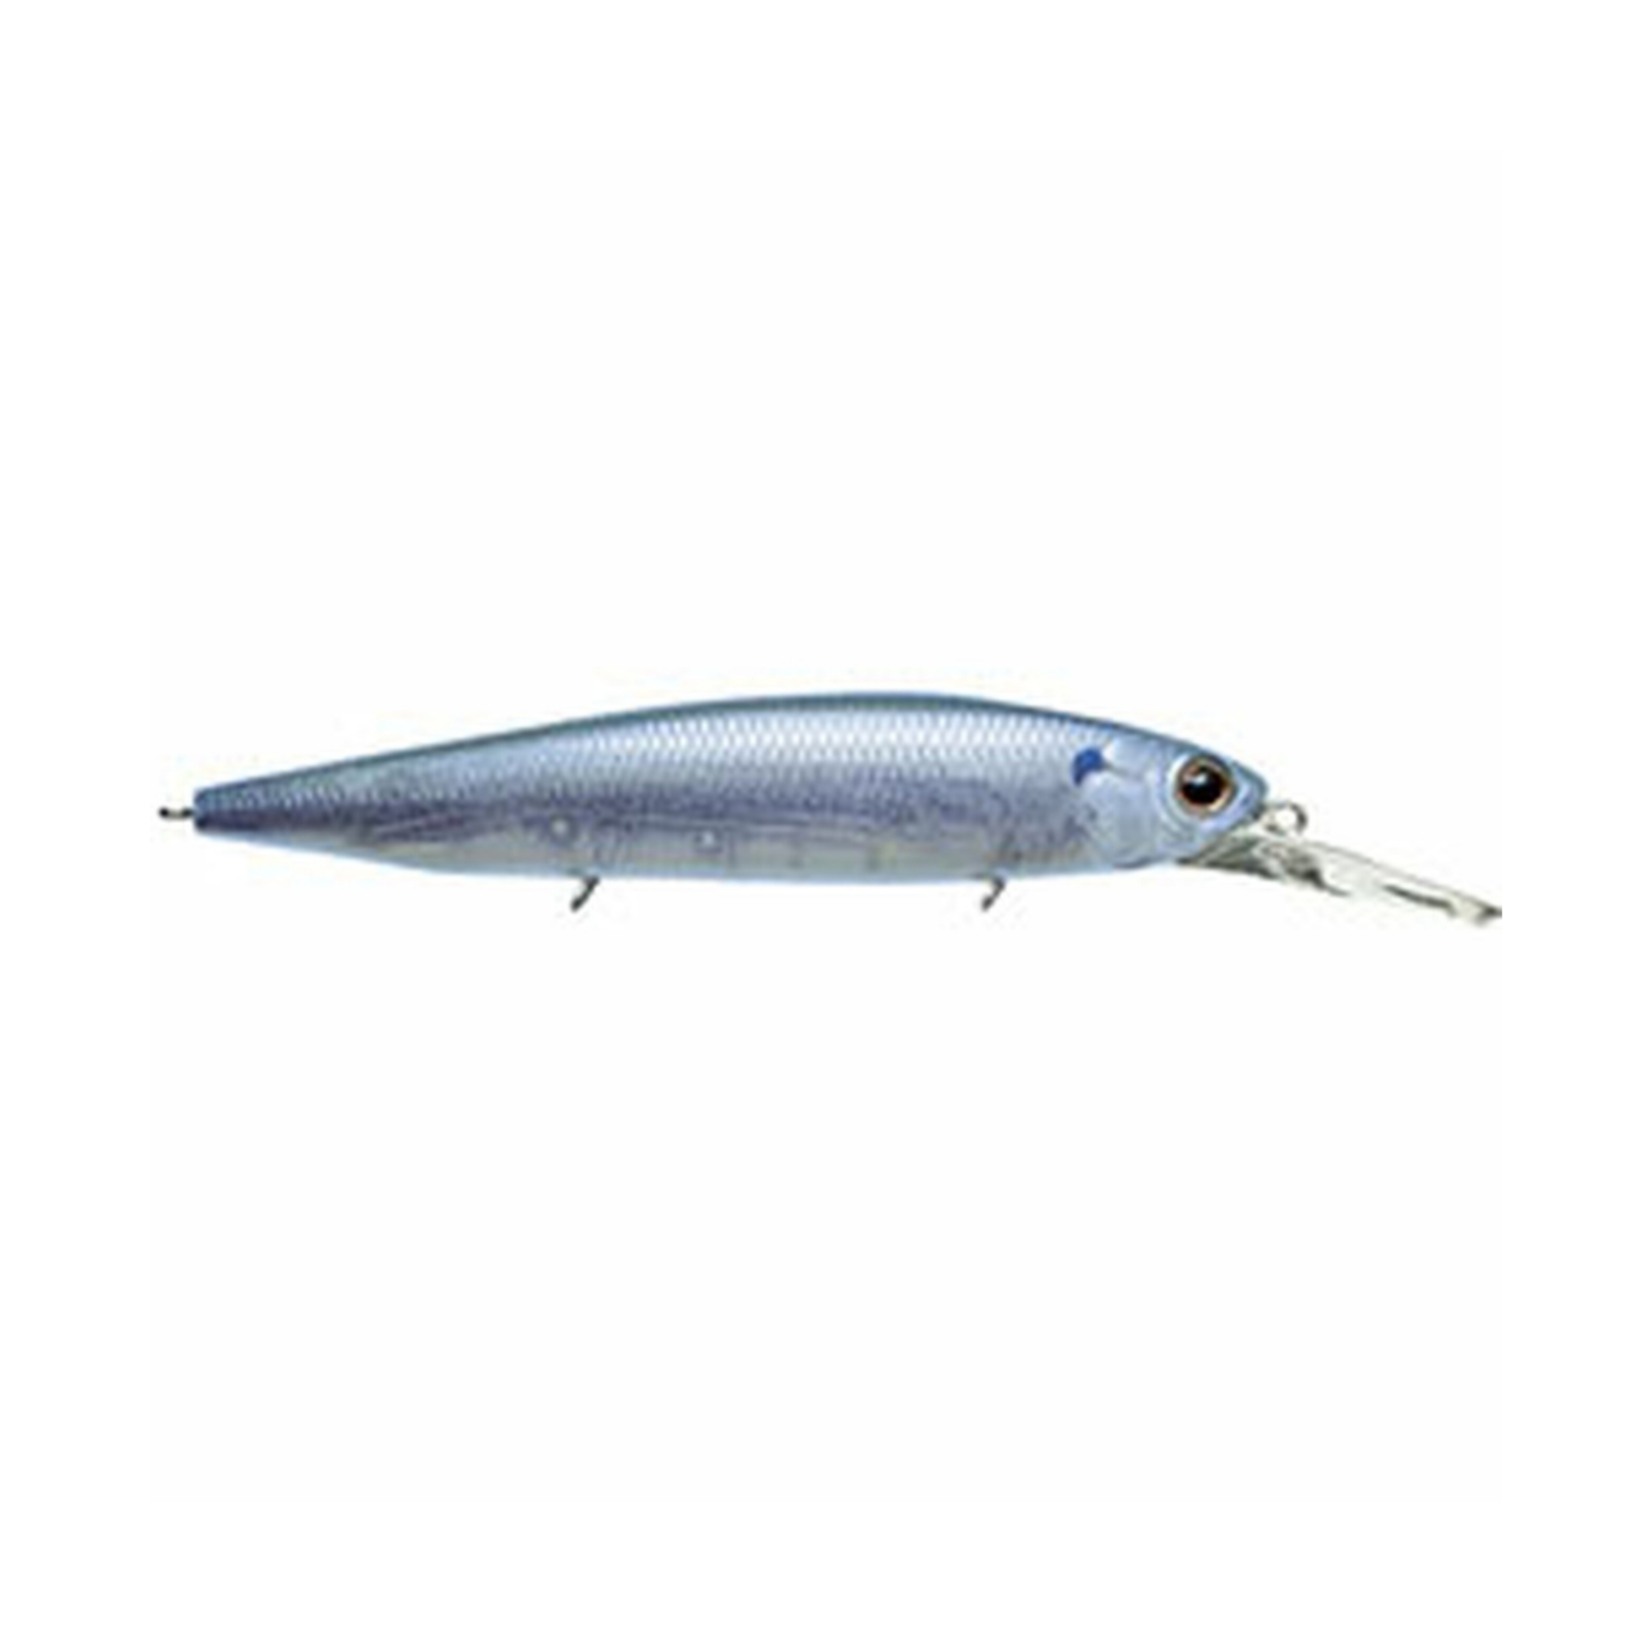 "Evergreen 1/2"", 5/8 oz, Striped Shad Evergreen FA-115-274 Jerk Bait, 4"